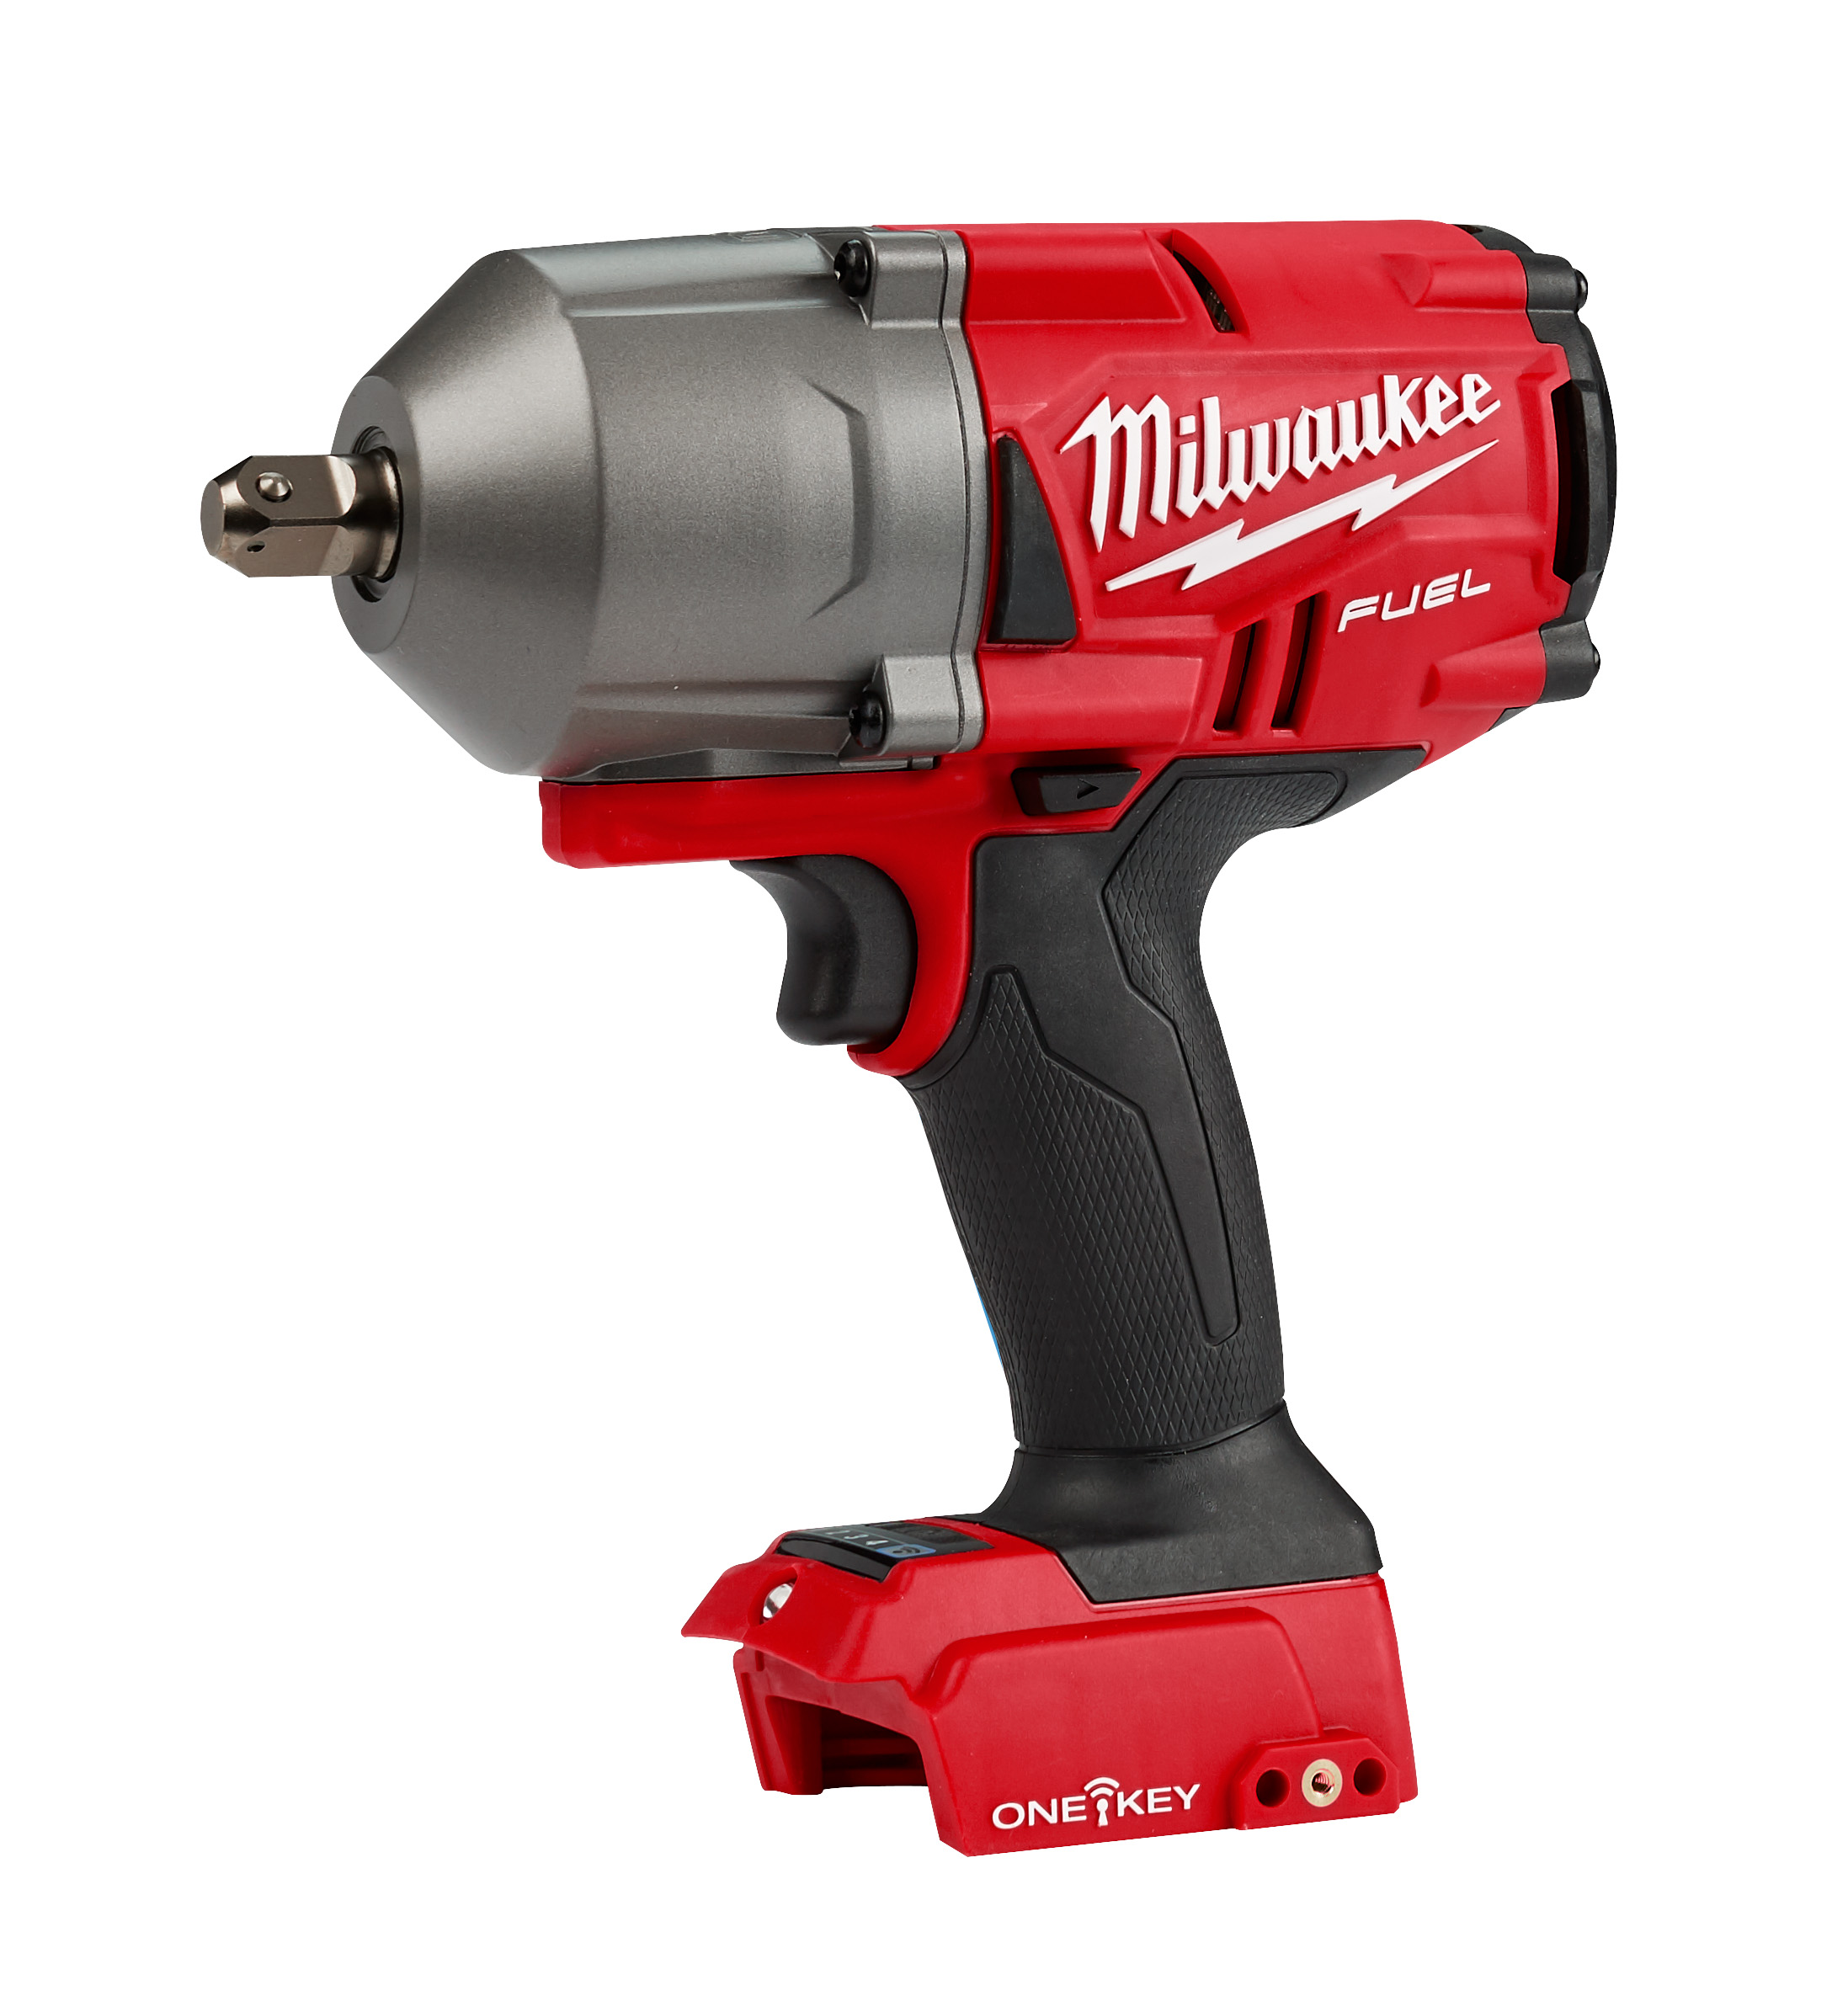 Milwaukee® M18™ FUEL™ ONE-KEY® 2862-20 Cordless High Torque Impact Wrench With 1/2 in Pin Detent Anvil, 1/2 in 4-Mode Straight Drive, 2400 bpm, 750/1100 ft-lb Torque, 18 VDC, 8-1/8 in OAL